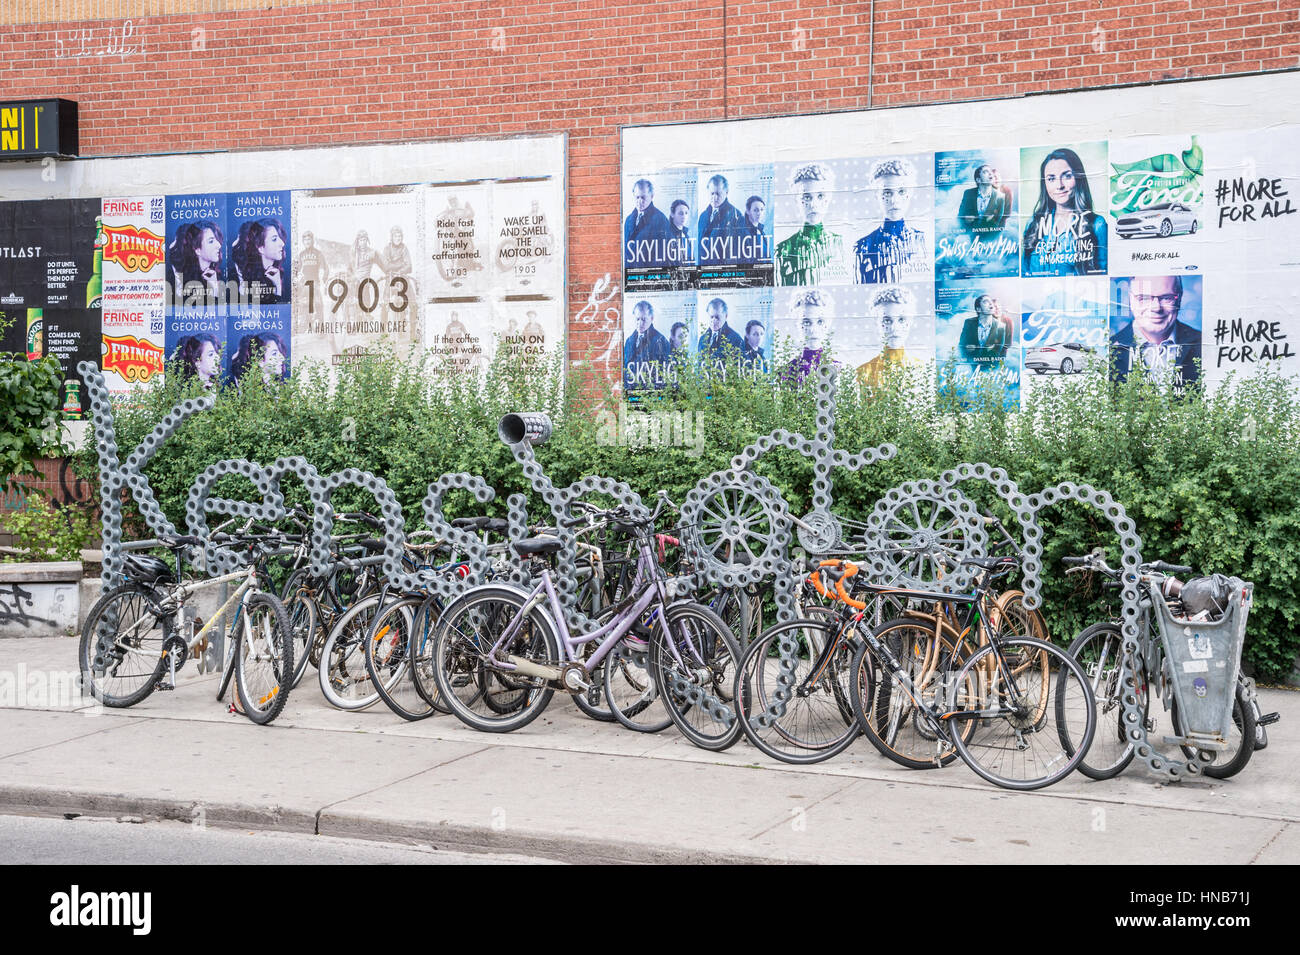 Toronto, Canada - 2 July 2016: Bike racks and Kensington neighbourhood metal sign in Toronto, Canada. - Stock Image